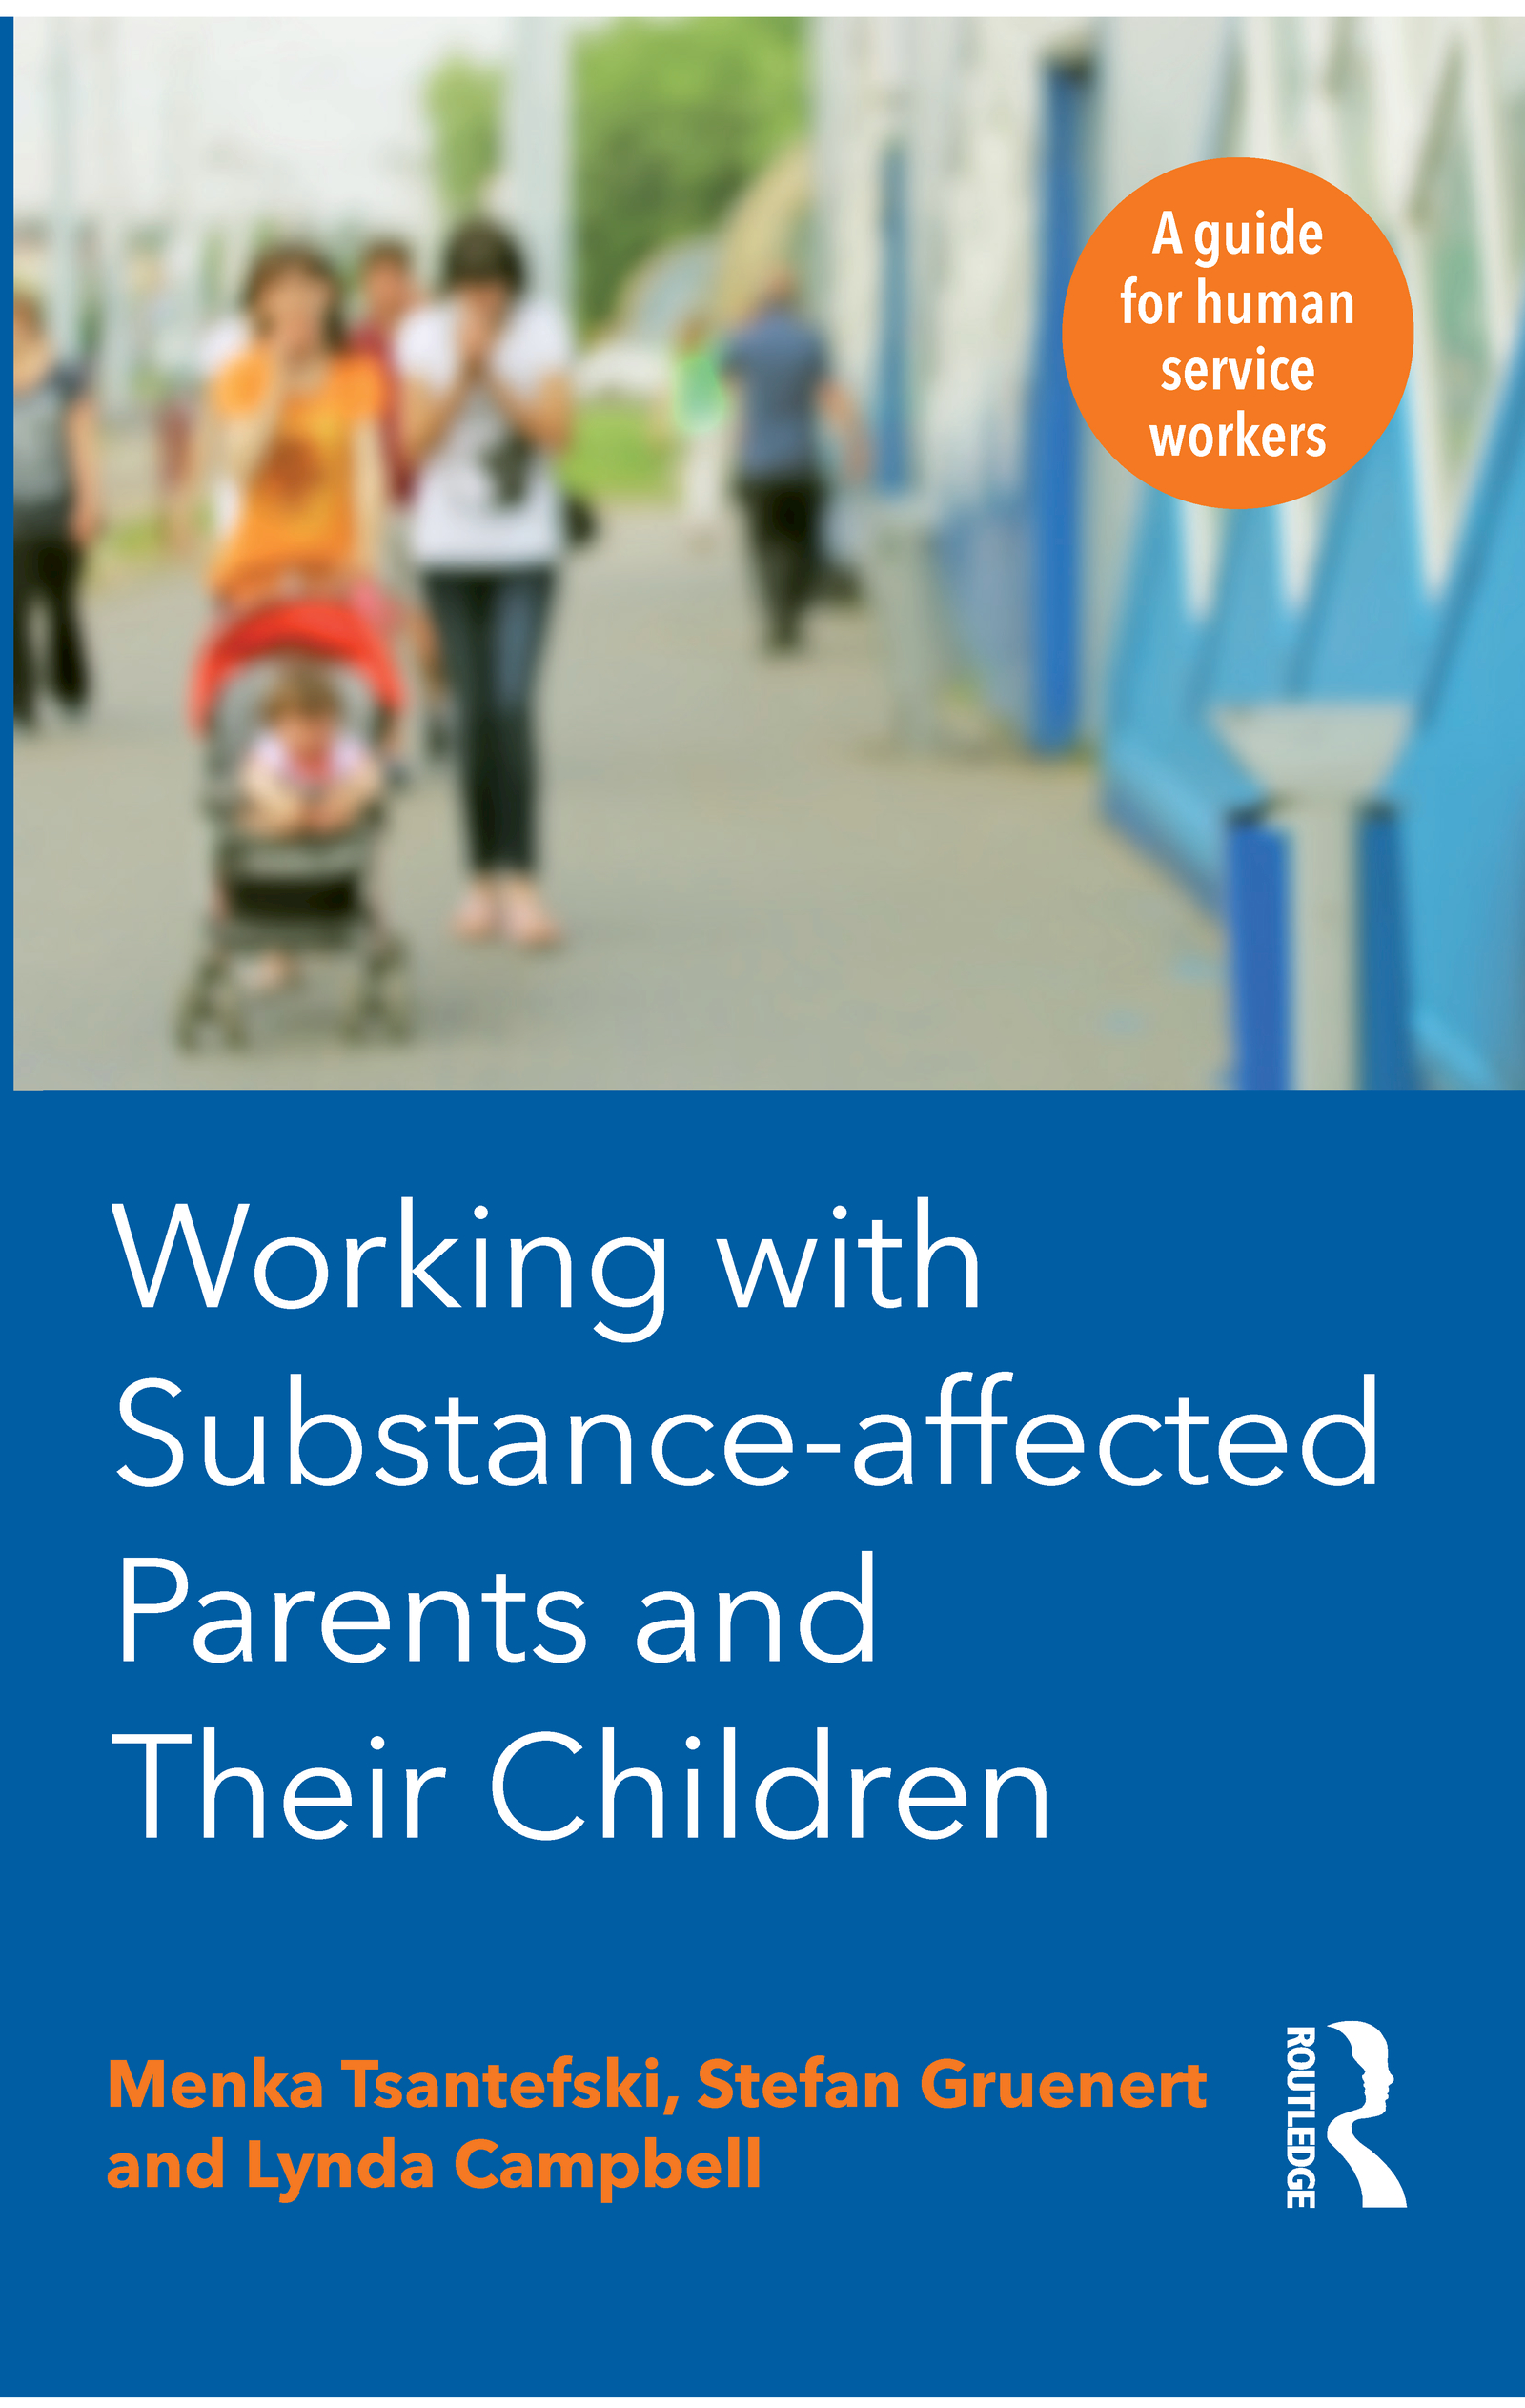 Working with Substance-affected Parents and Their Children